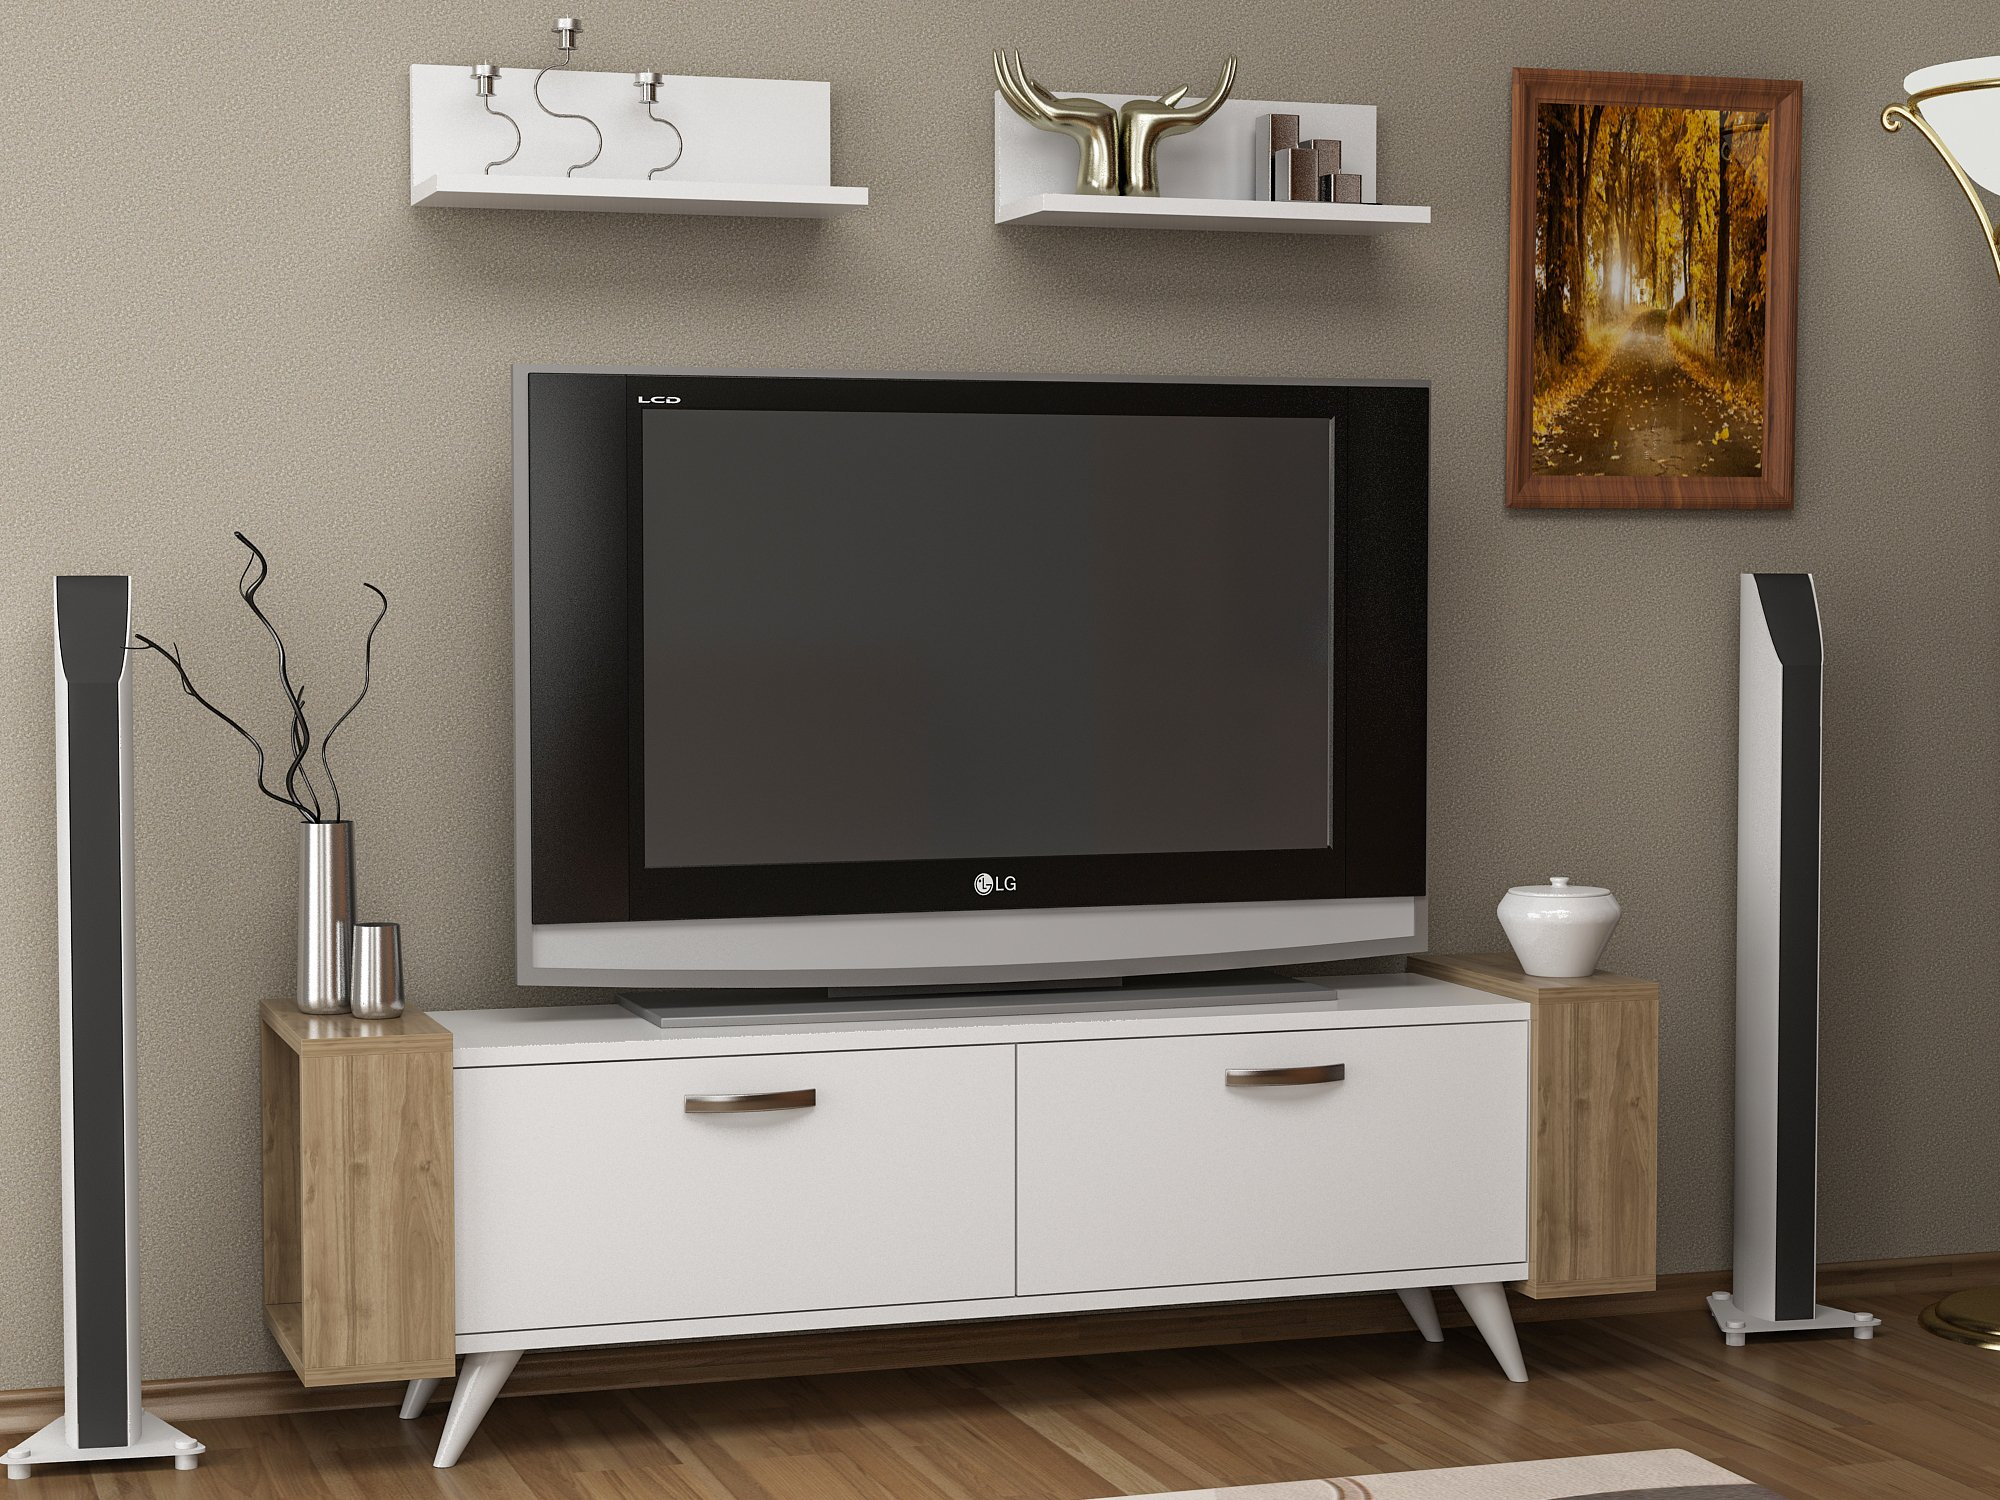 Mobilier50096